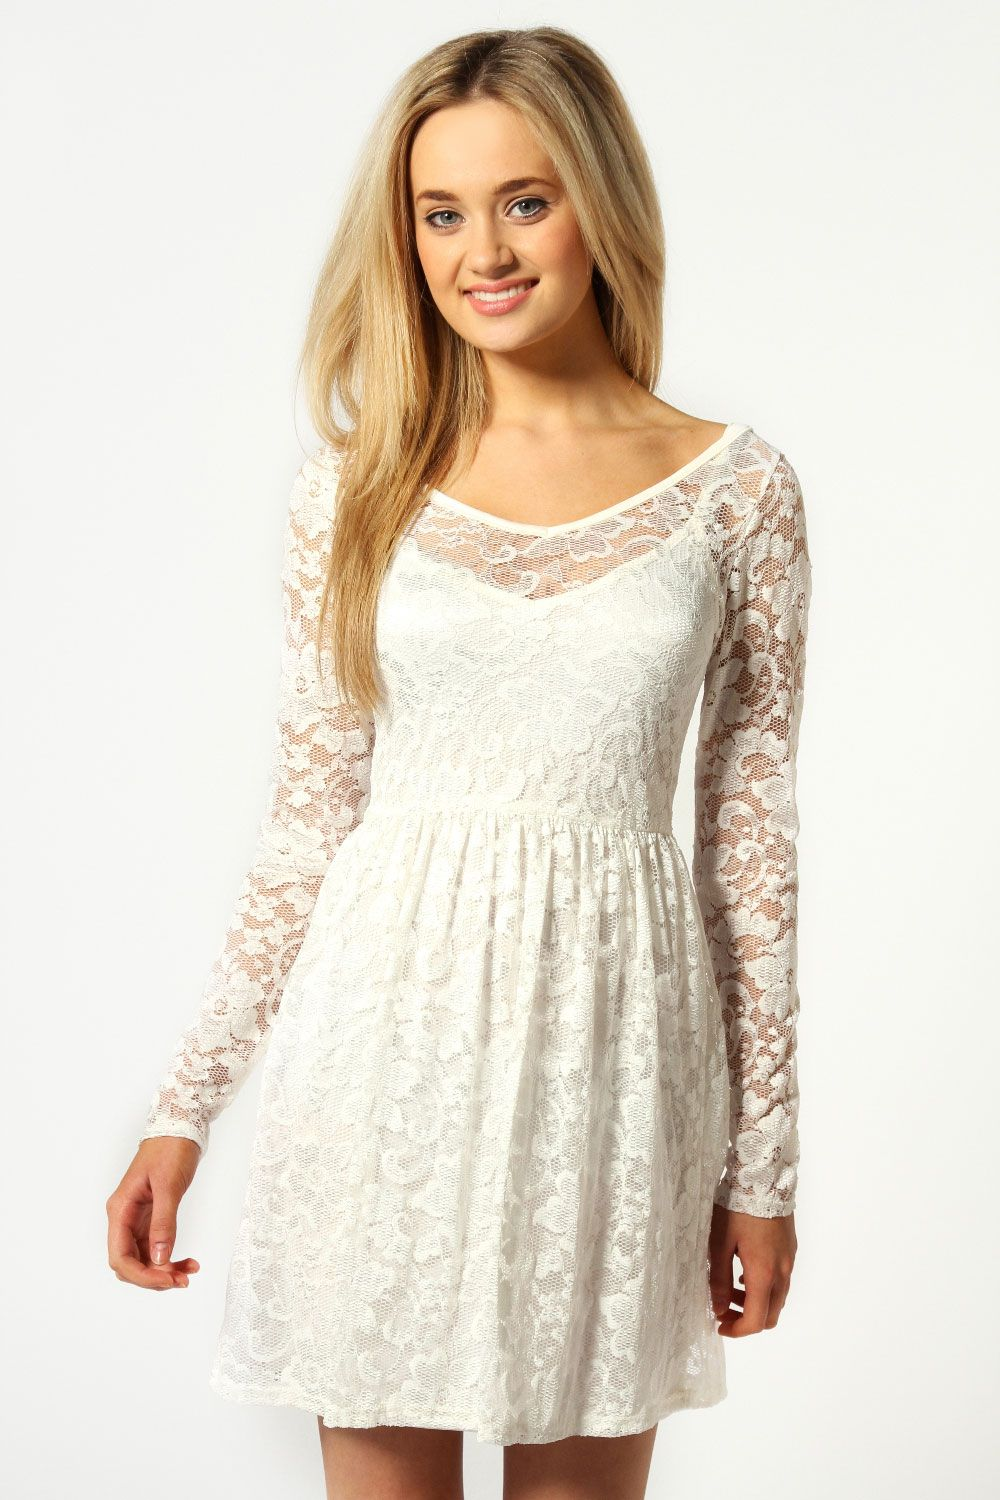 long-sleeve-lace-dress- | Long Sleeve Dresses | Pinterest | Lace ...